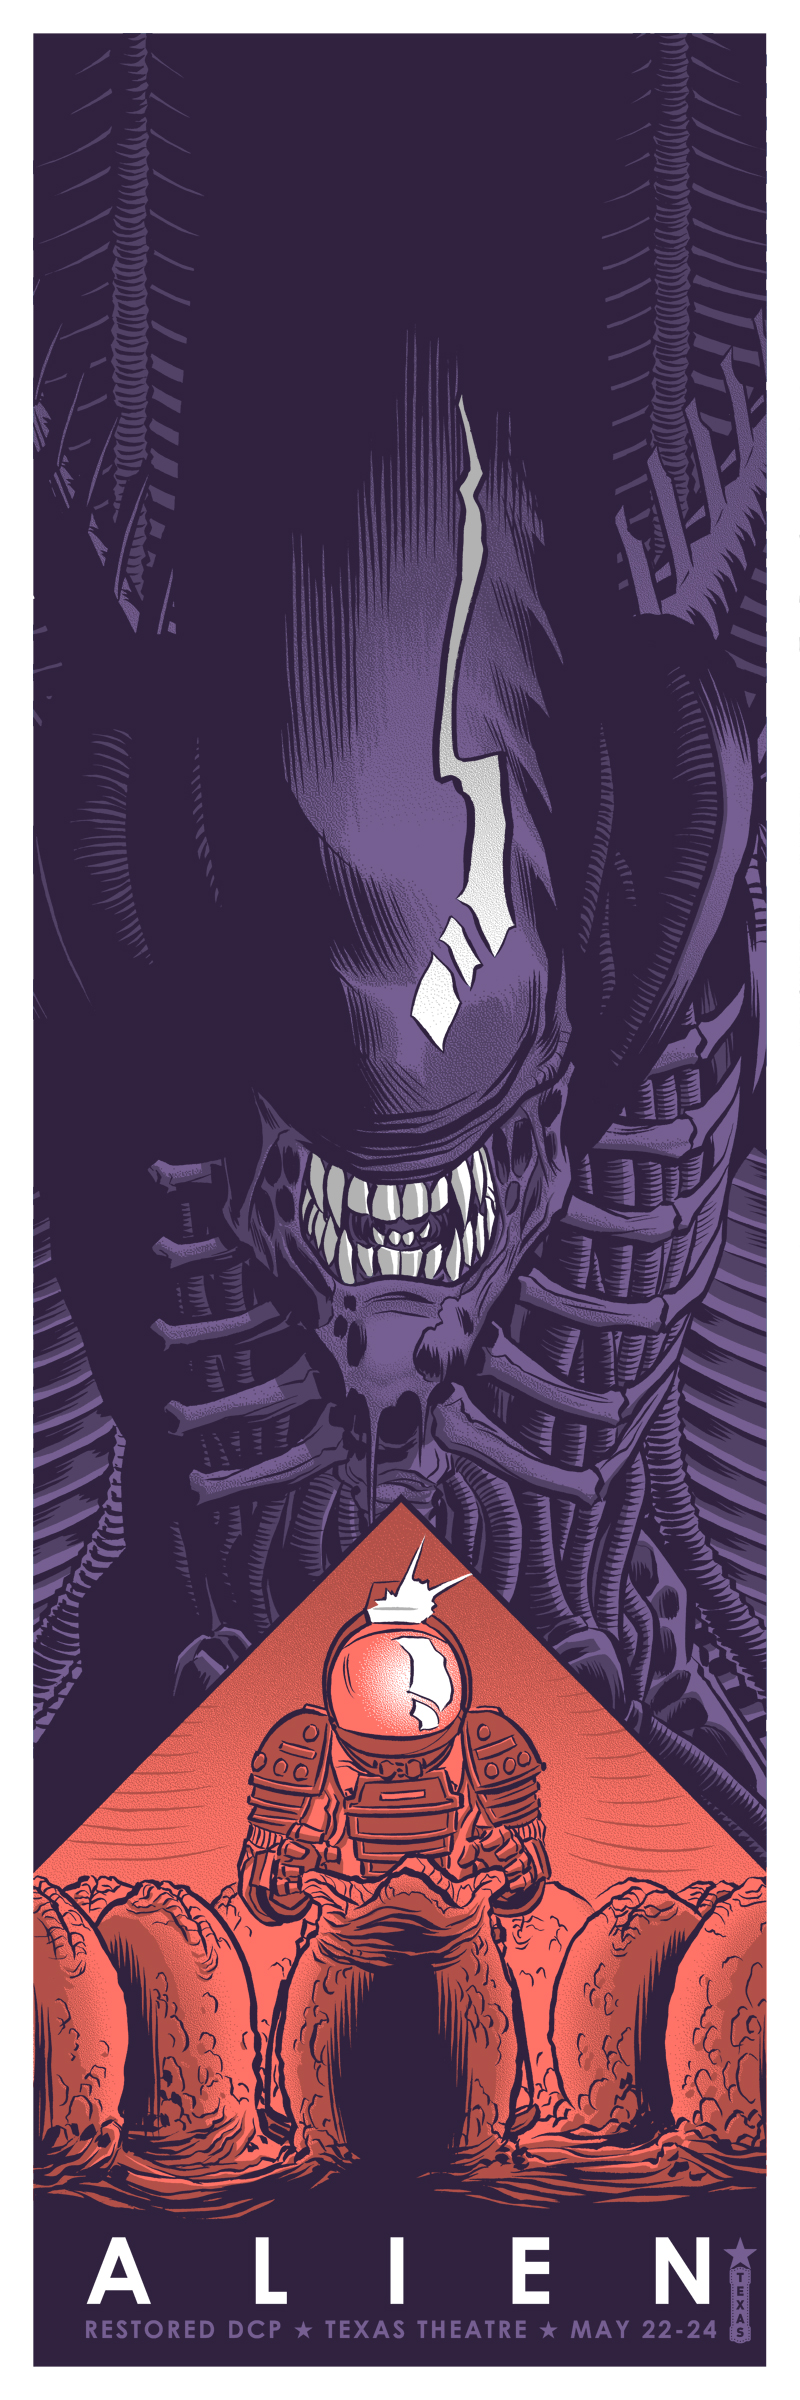 """Alien"" by Robert Wilson IV.  12"" x 36"" Screenprint.  Ed of 75 S/N.  $40 (Purple)"